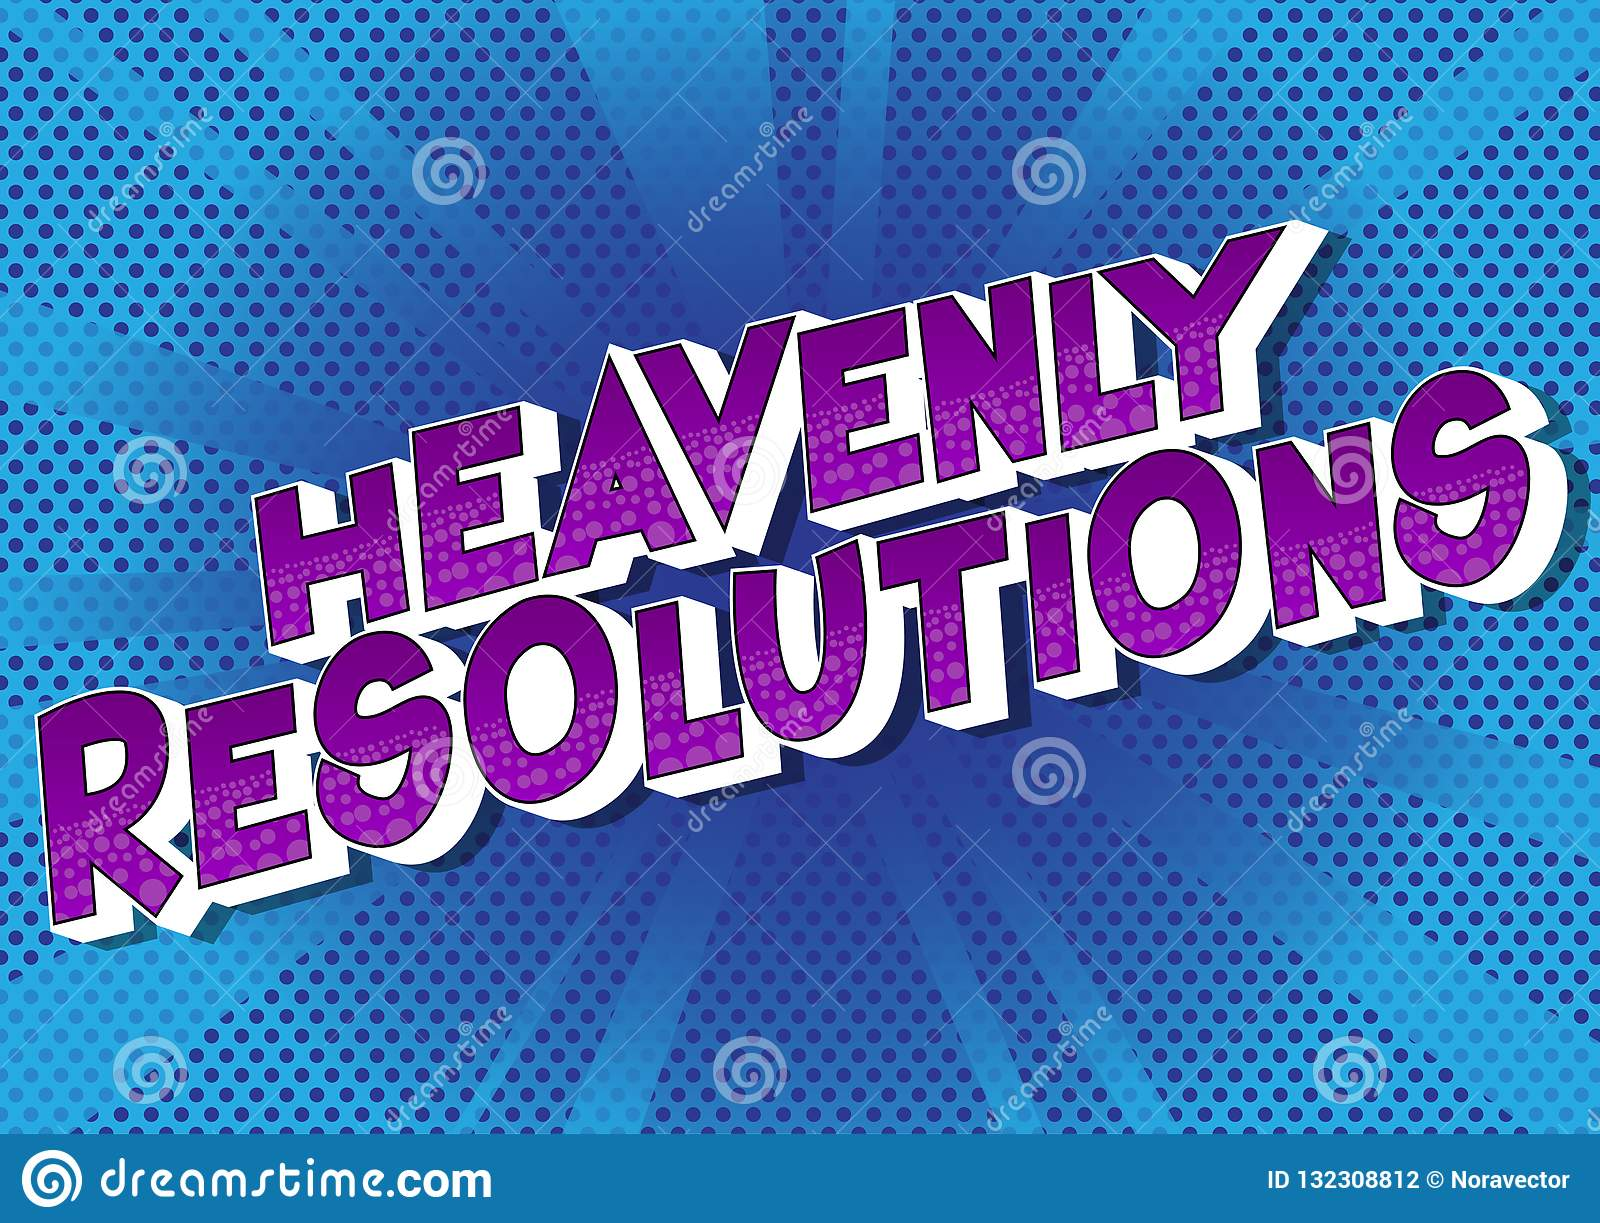 Heavenly Resolutions - Comic book style words.